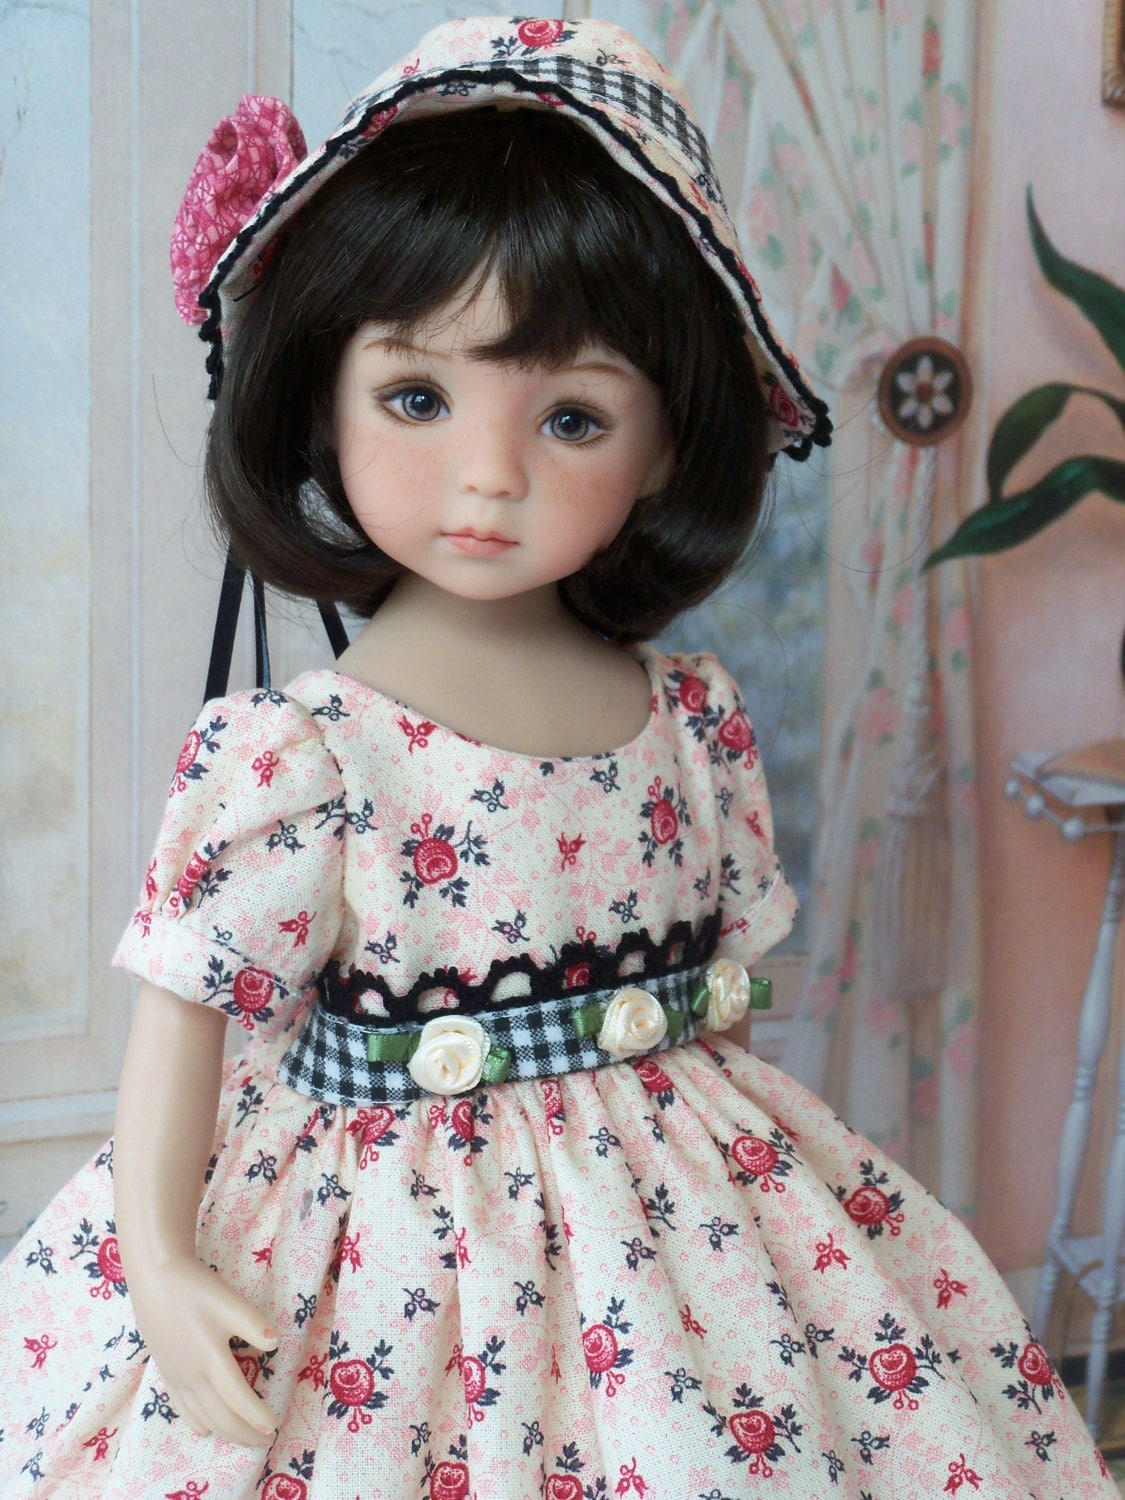 spring gown and bonnet for dianna effner 13 little